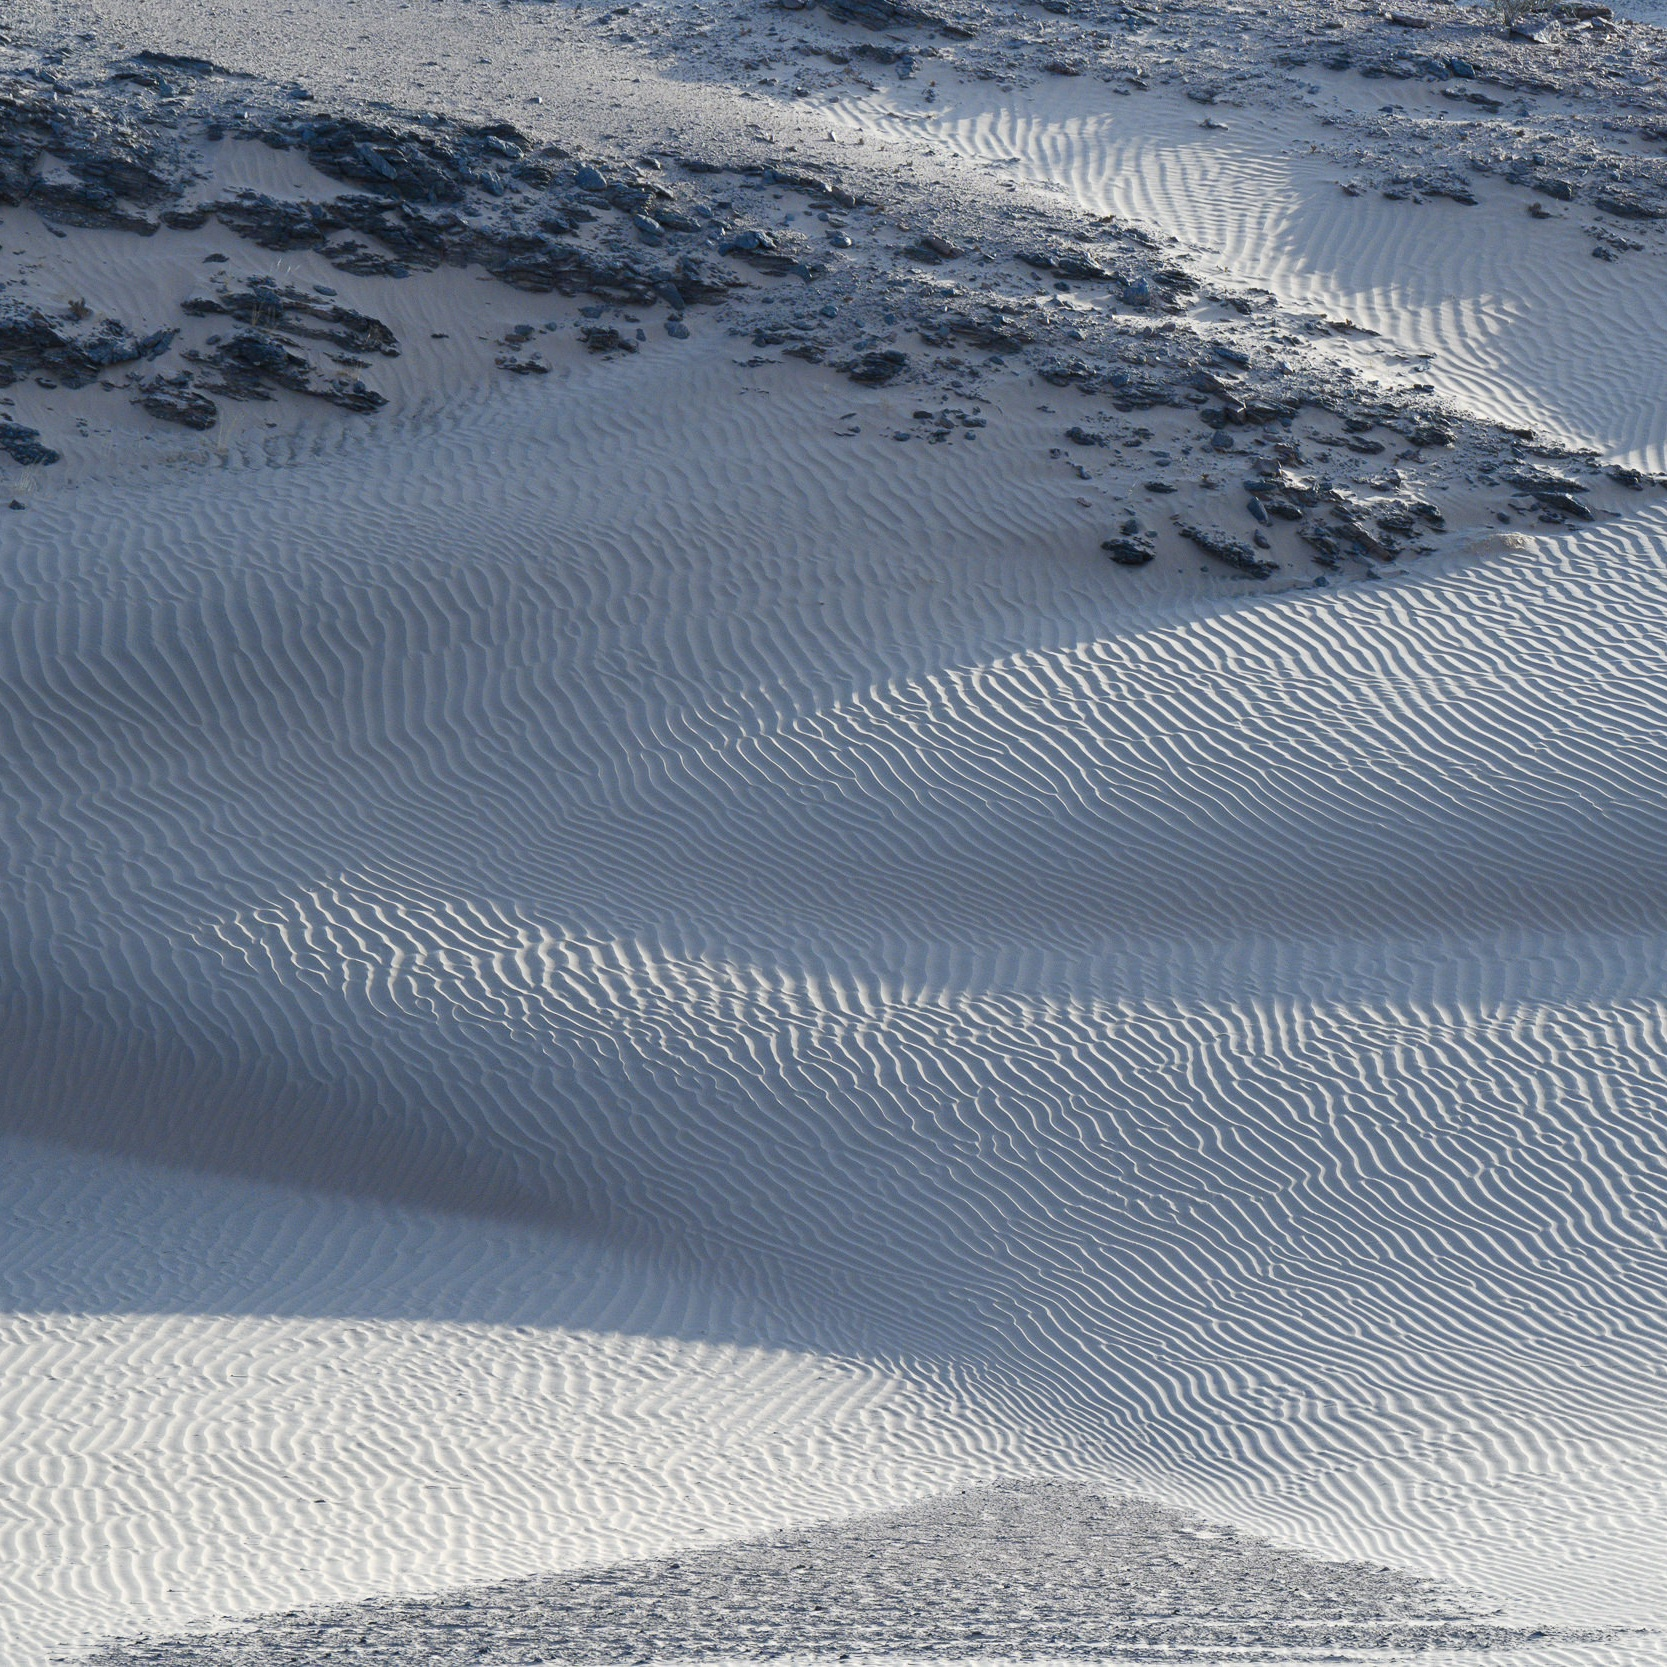 WILD & AWAY NAMIBIA - 14th - 22nd March 2020